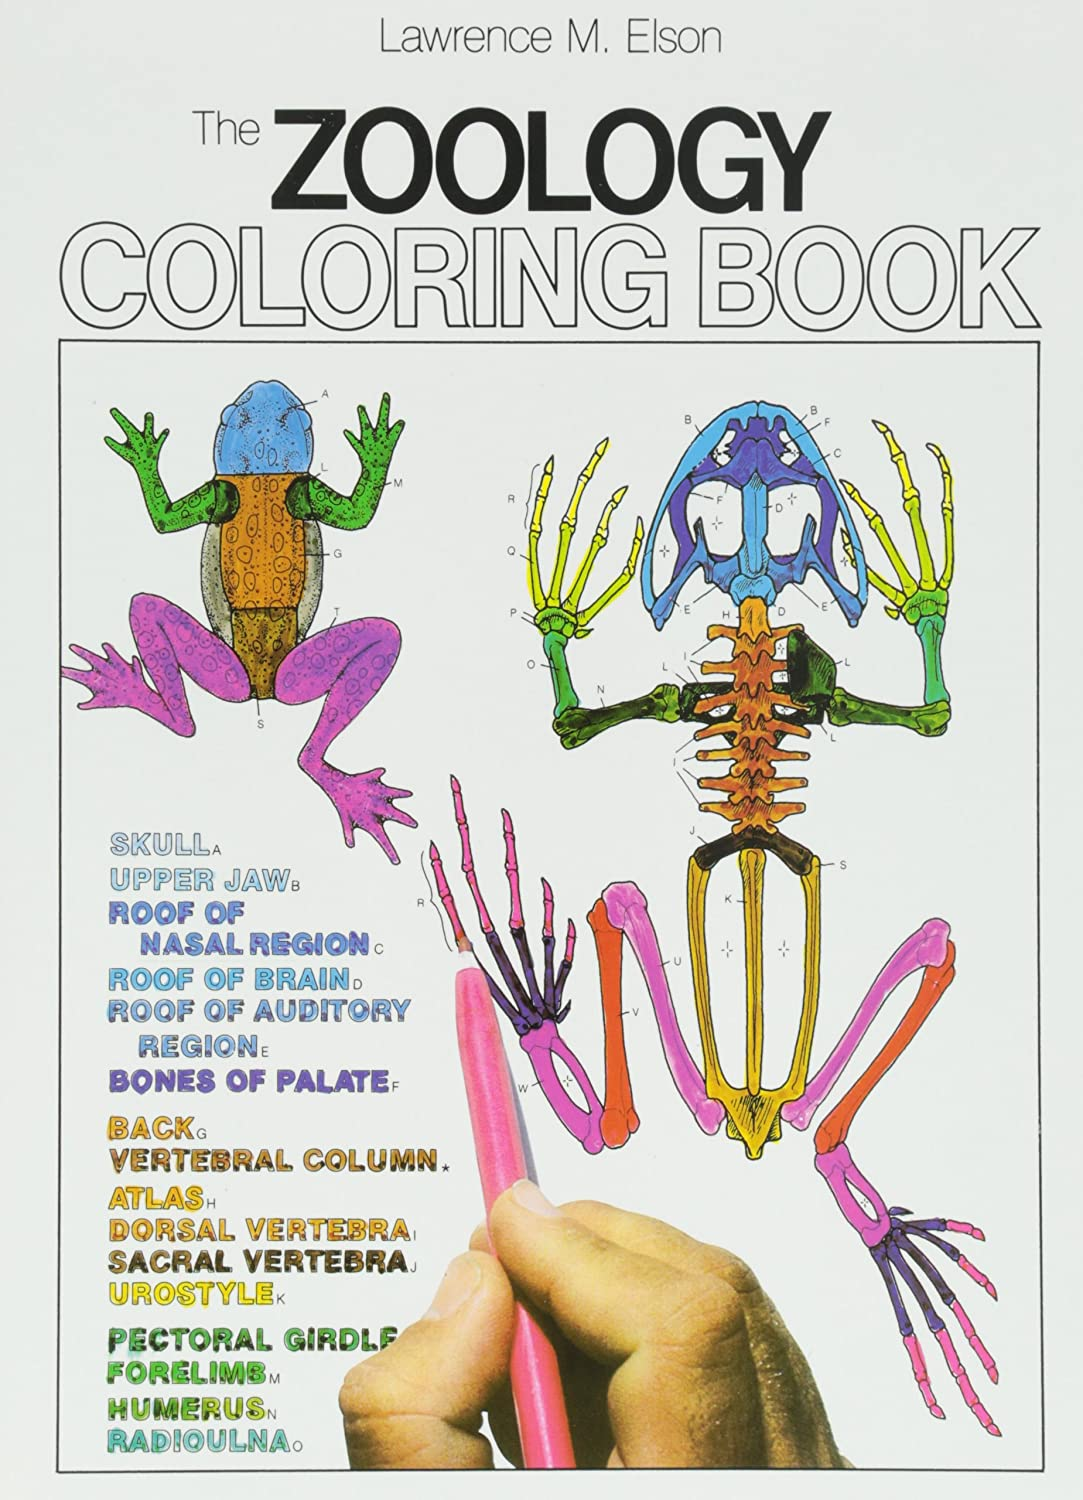 The zoology coloring book - Harper Collins 218 Pages Paperback Zoology Coloring Book Science Lab Education Curriculum Support Amazon Com Industrial Scientific